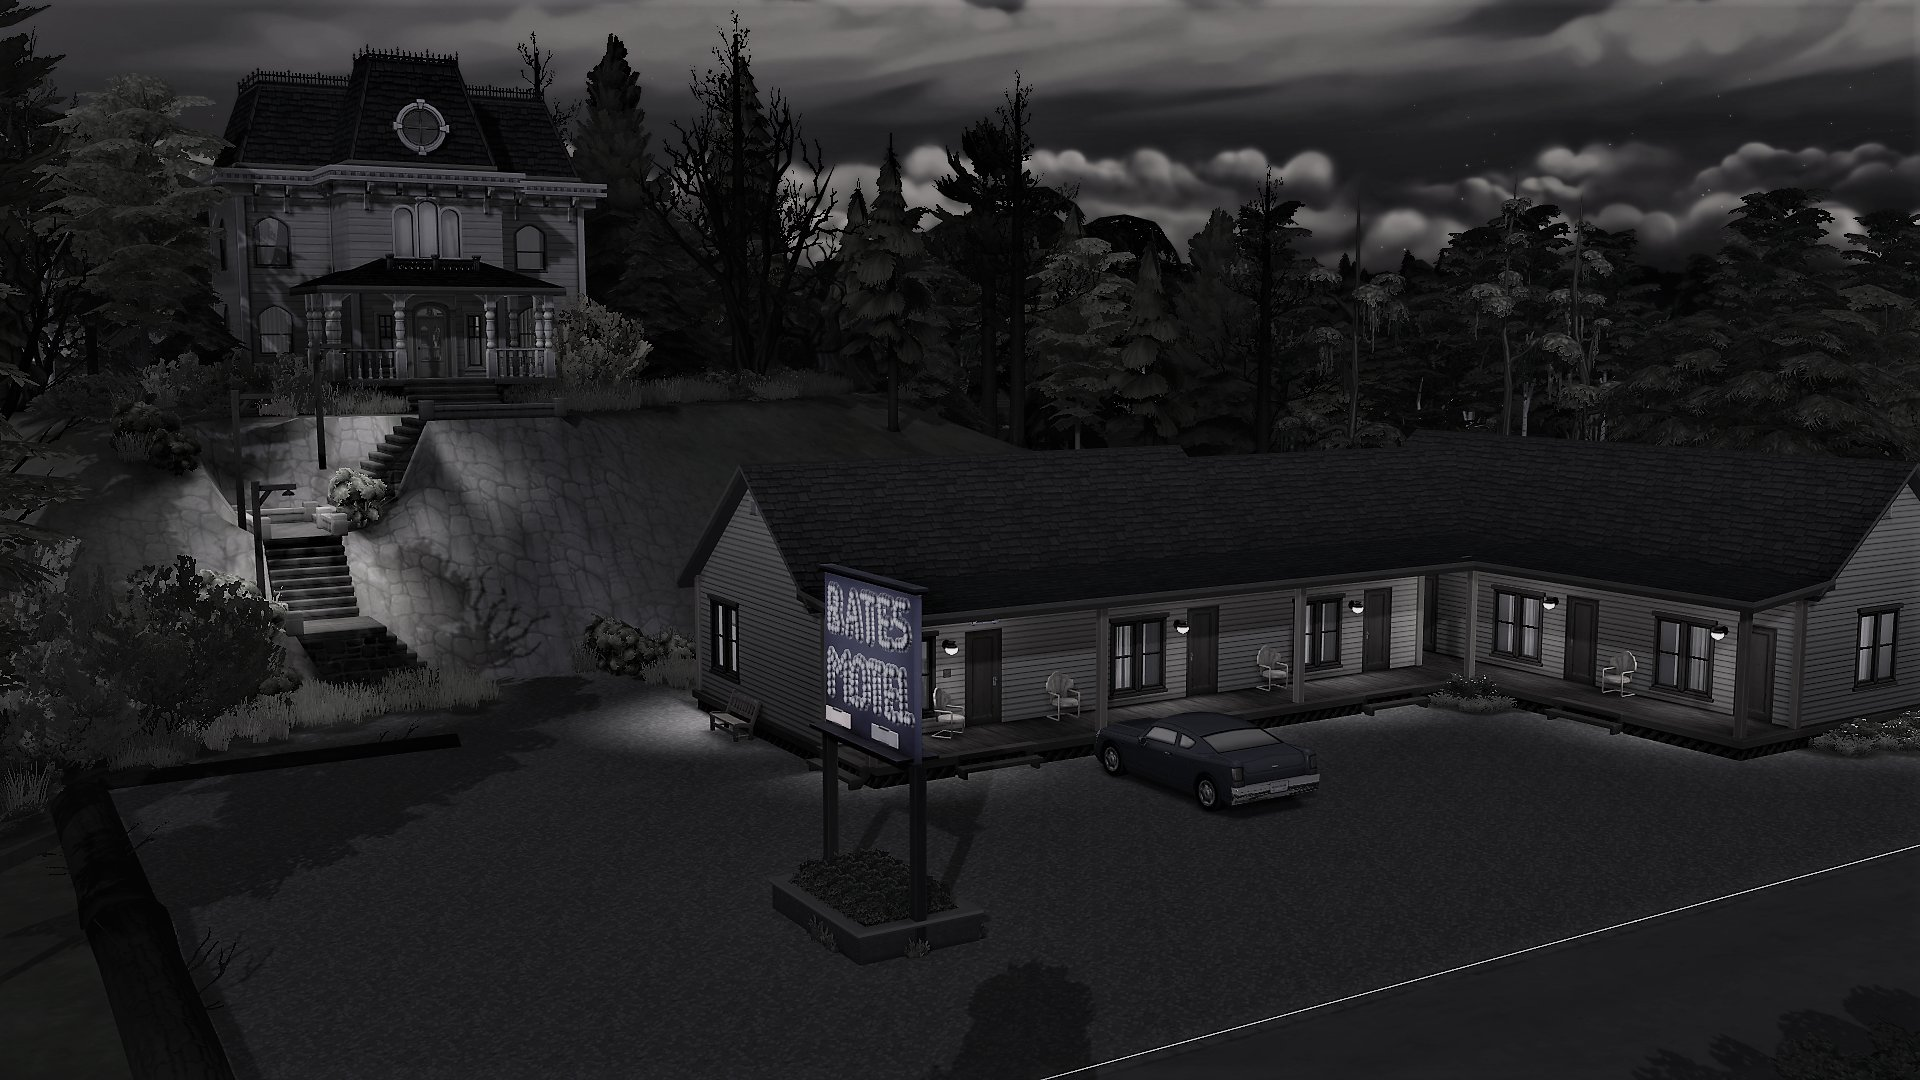 A black and white screenshot of The Bates Motel from the movie Psycho, built in The Sims 4